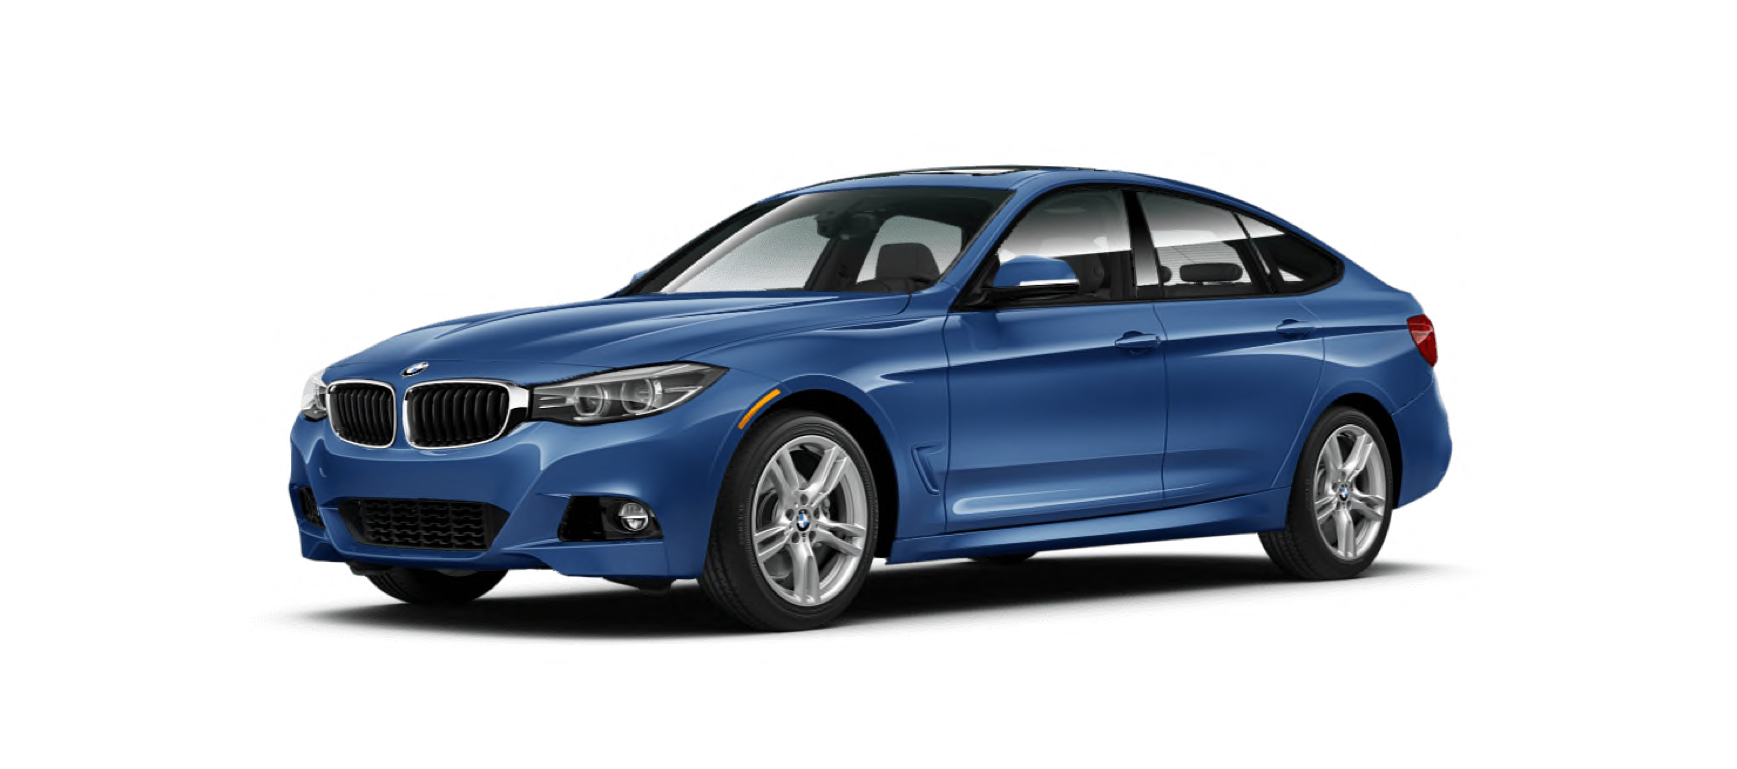 2017 BMW 3 Series sedan for sale at Costa Mesa BMW dealership near Santa Ana